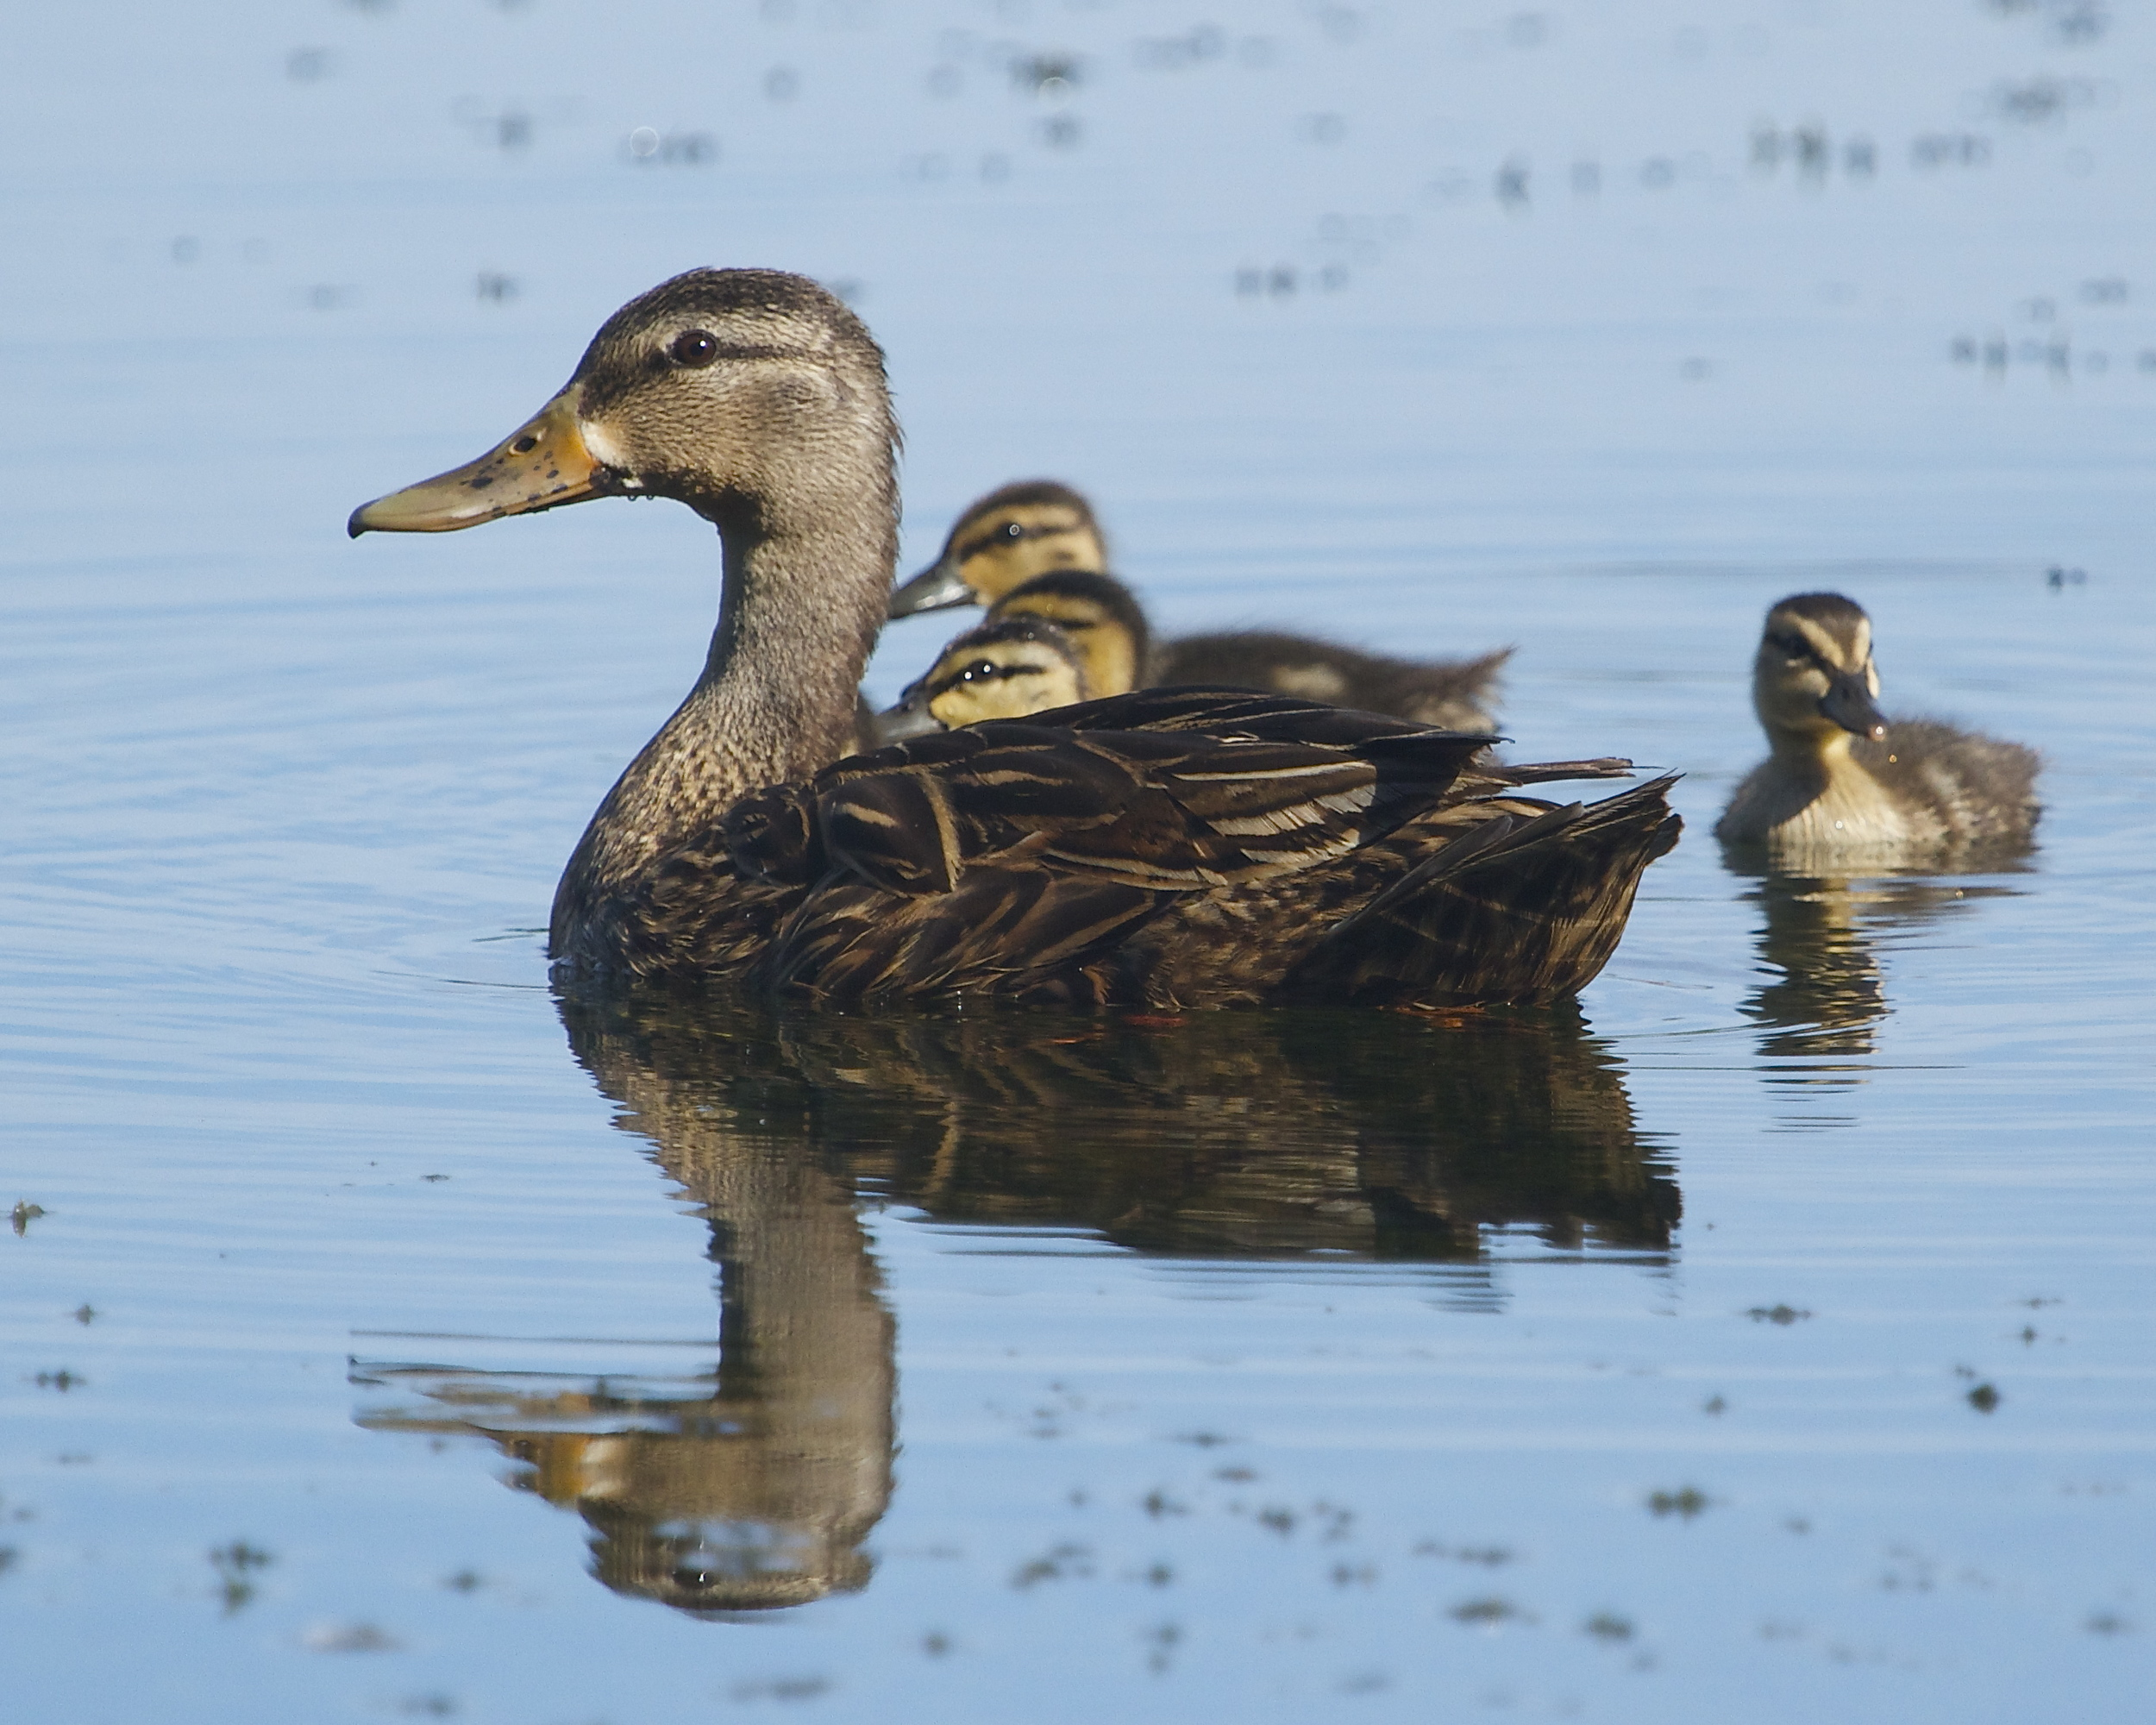 Female Mallard provides protection for her ducklings.